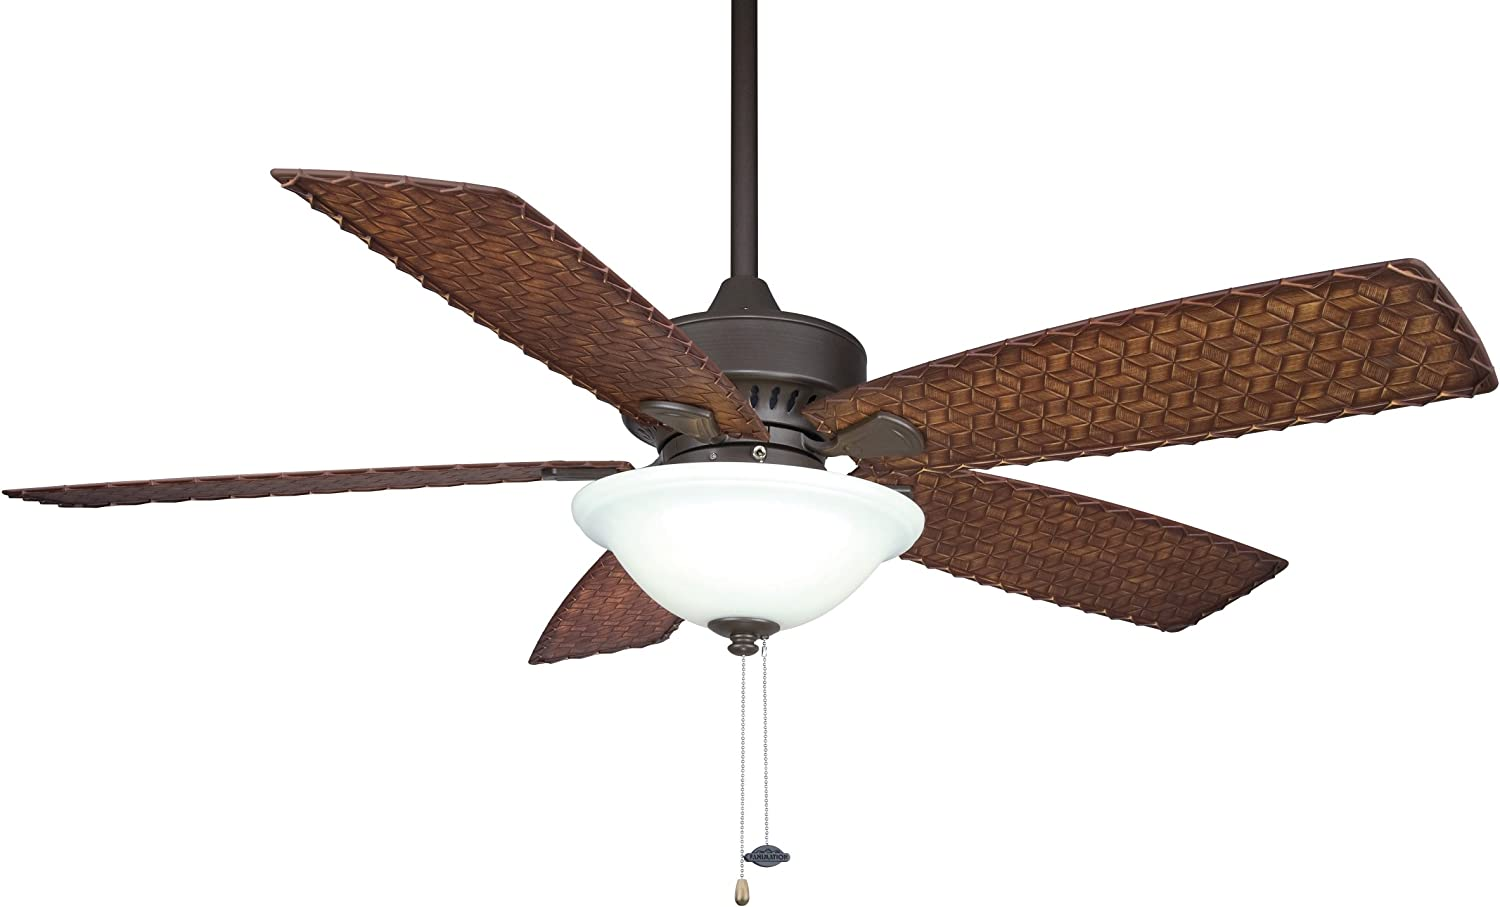 Fanimation FP8011OB-220 220-volt Cancun Fan, Oil Rubbed Bronze 71WMmOZaccLSL1500_